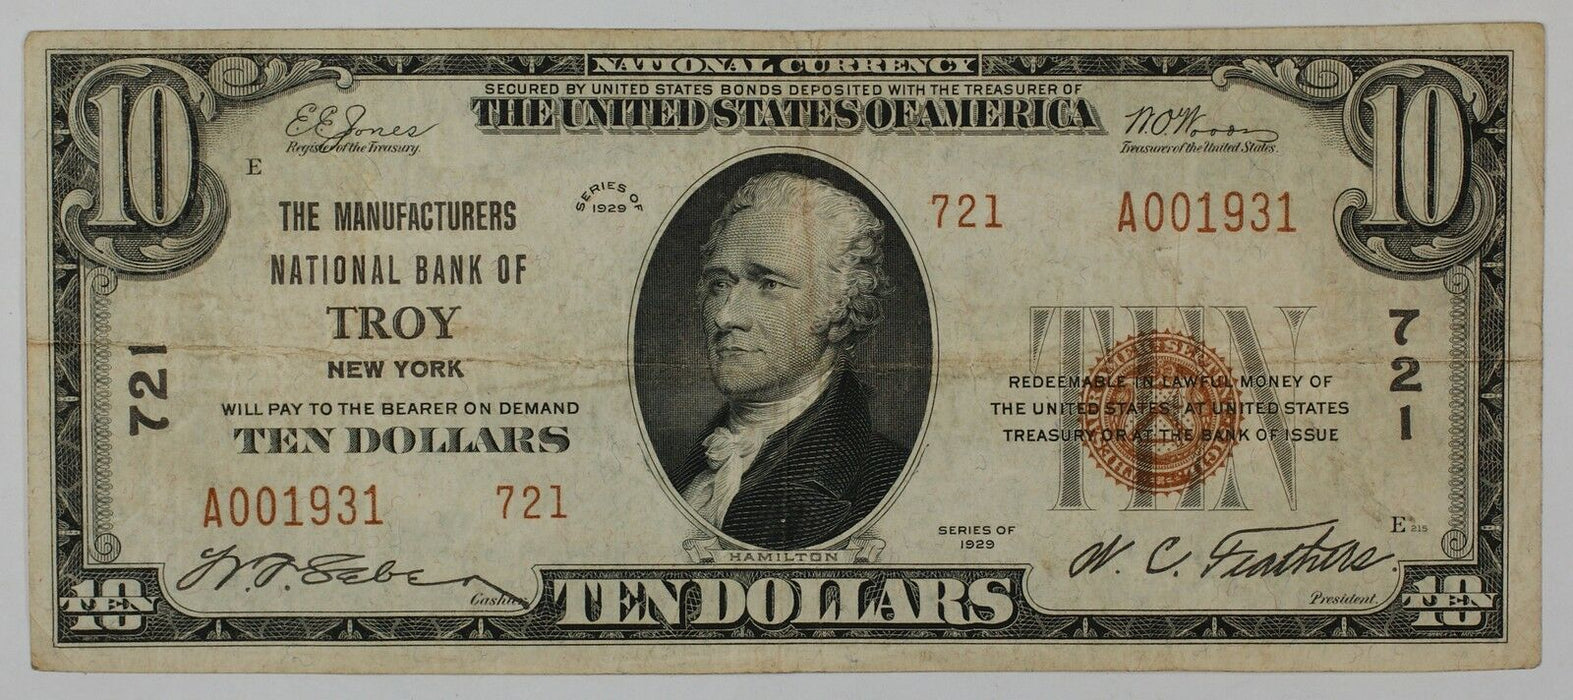 1929 $10 National Currency Bank Note- Troy, New York- Type 2- 721- Rensselaer